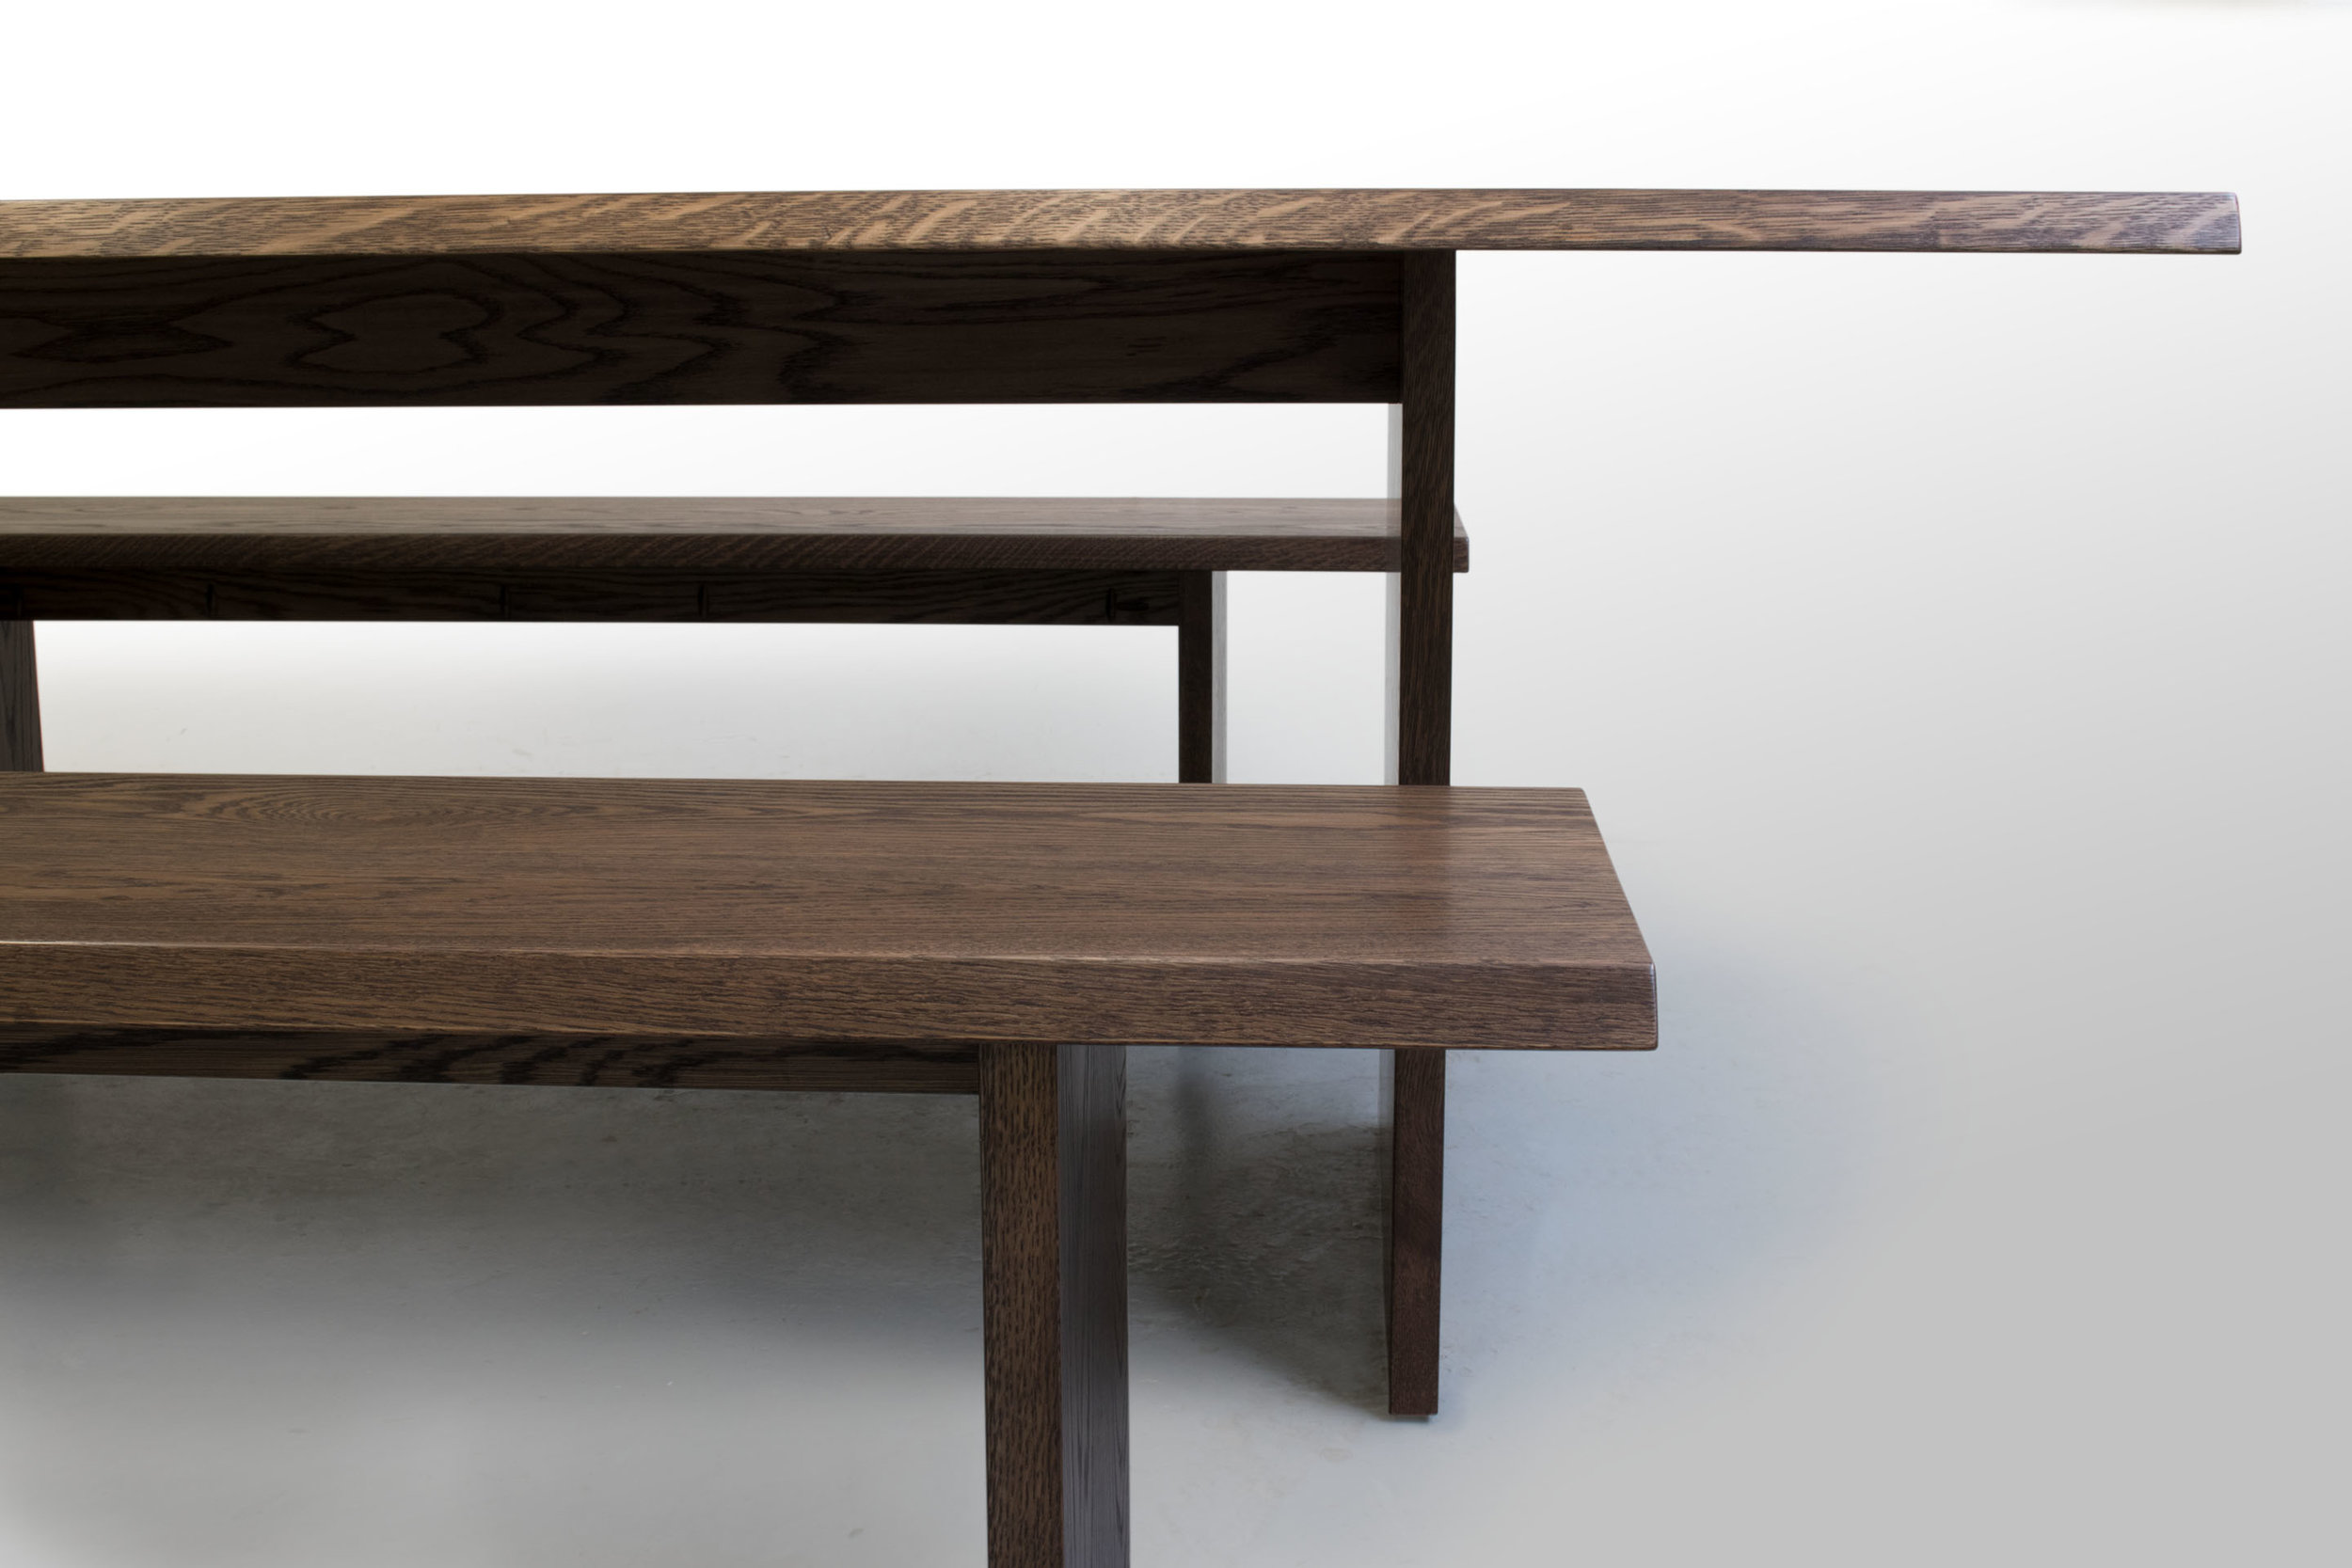 Oak table with benches5.jpg